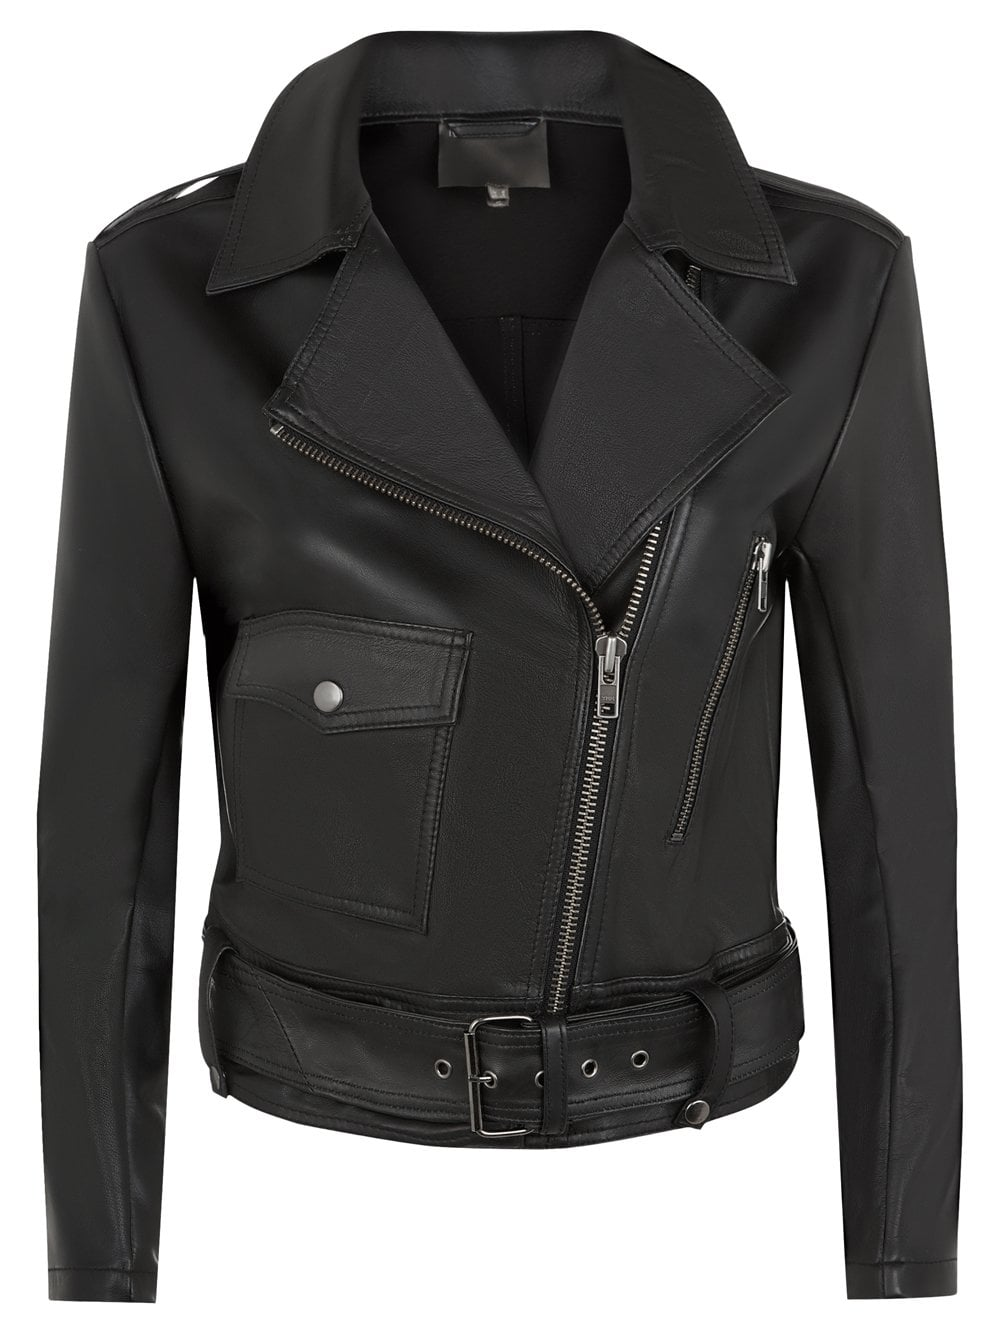 Muubaa creates stylish but timeless pieces for women all with leather detailing. The edge that Muubaa clothing can add to your wardrobe comes from the fact that they use contrast; they pair tough shapes with feminine detailing, distressed finished on tailors cuts and other contrasting details to .